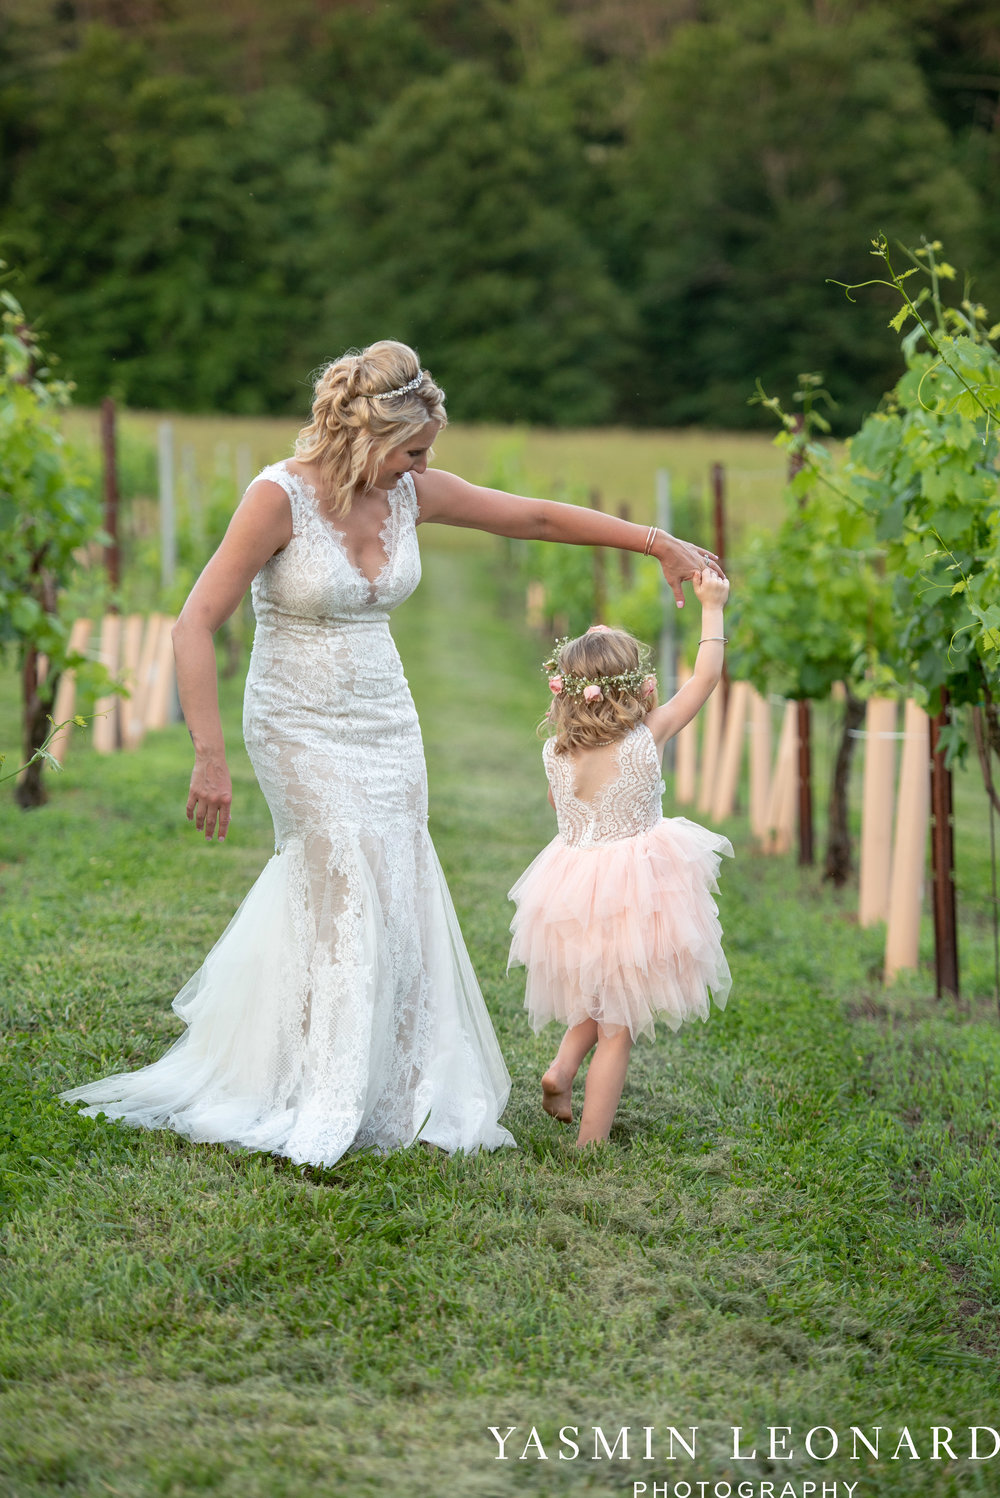 Elkin Creek Vineyard - Elkin Creek Weddings - NC Wine - NC Wineries - NC Weddings - NC Photographers - NC Wedding Photographer - NC Winery Wedding Ideas - Yasmin Leonard Photography - High Point Wedding Photographer-88.jpg